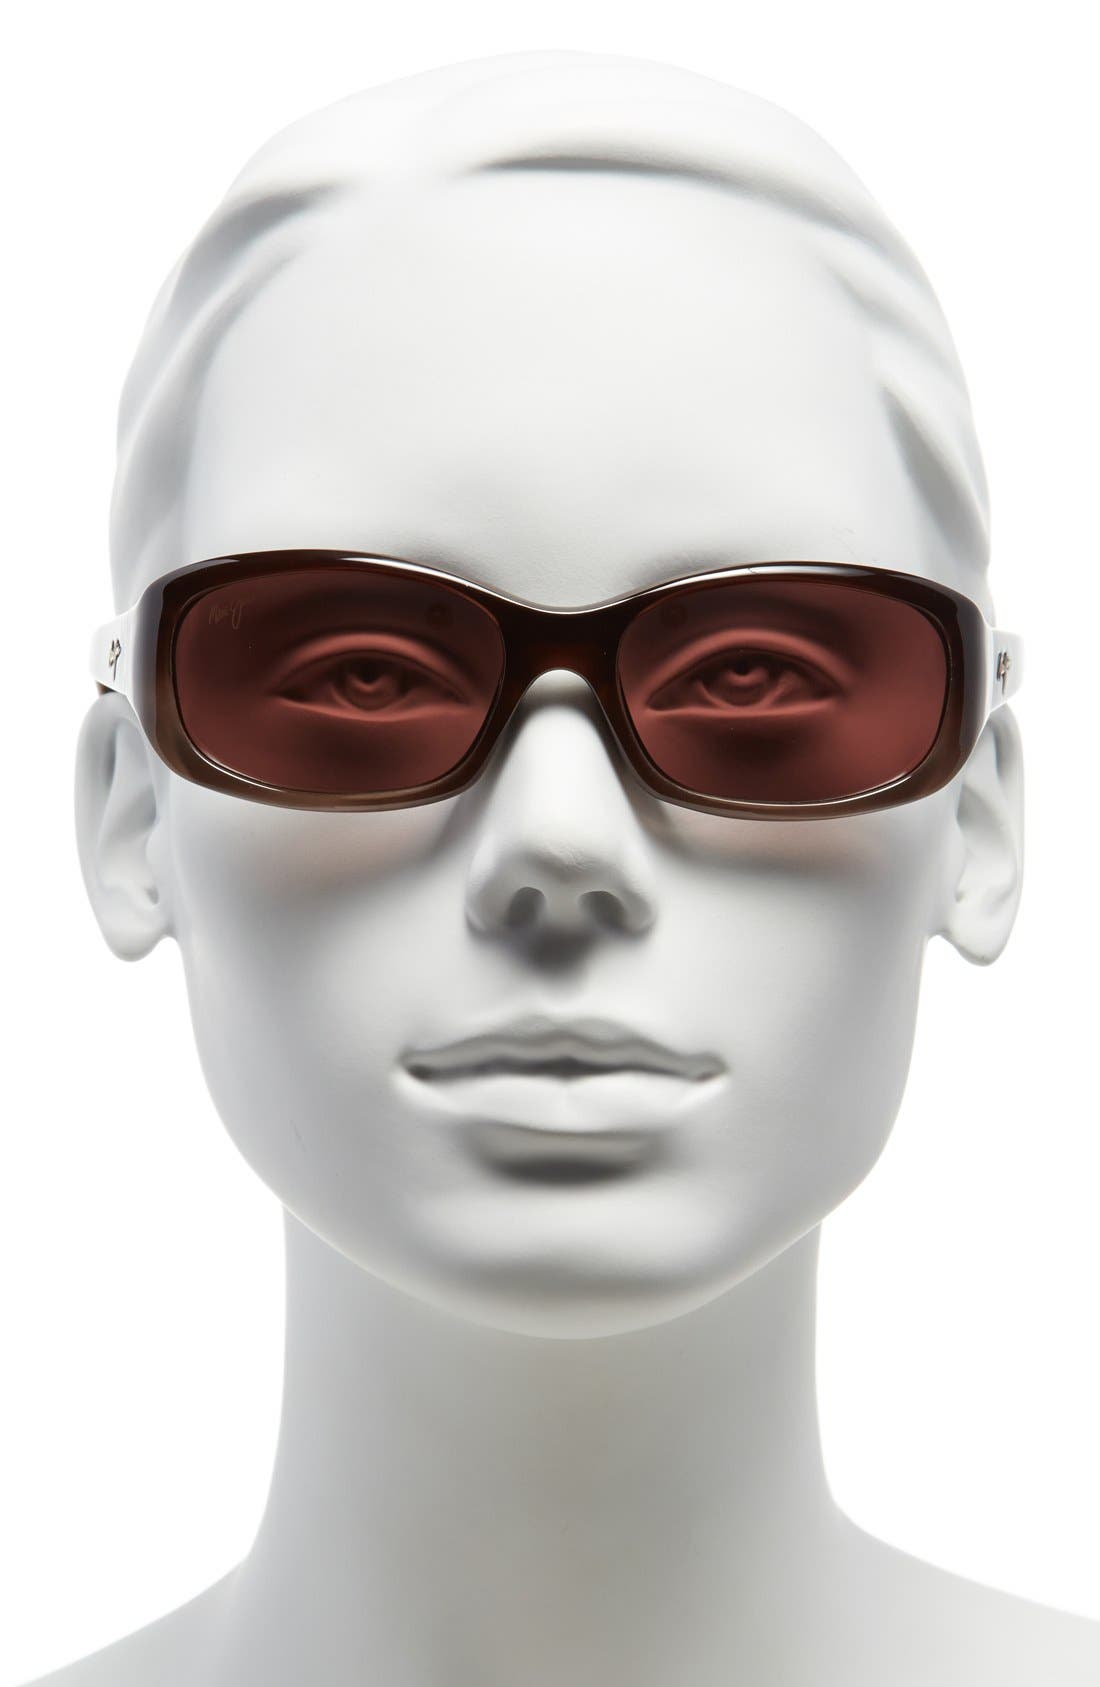 Punchbowl 54mm PolarizedPlus<sup>®</sup> Sunglasses,                             Alternate thumbnail 2, color,                             CHOCOLATE FADE